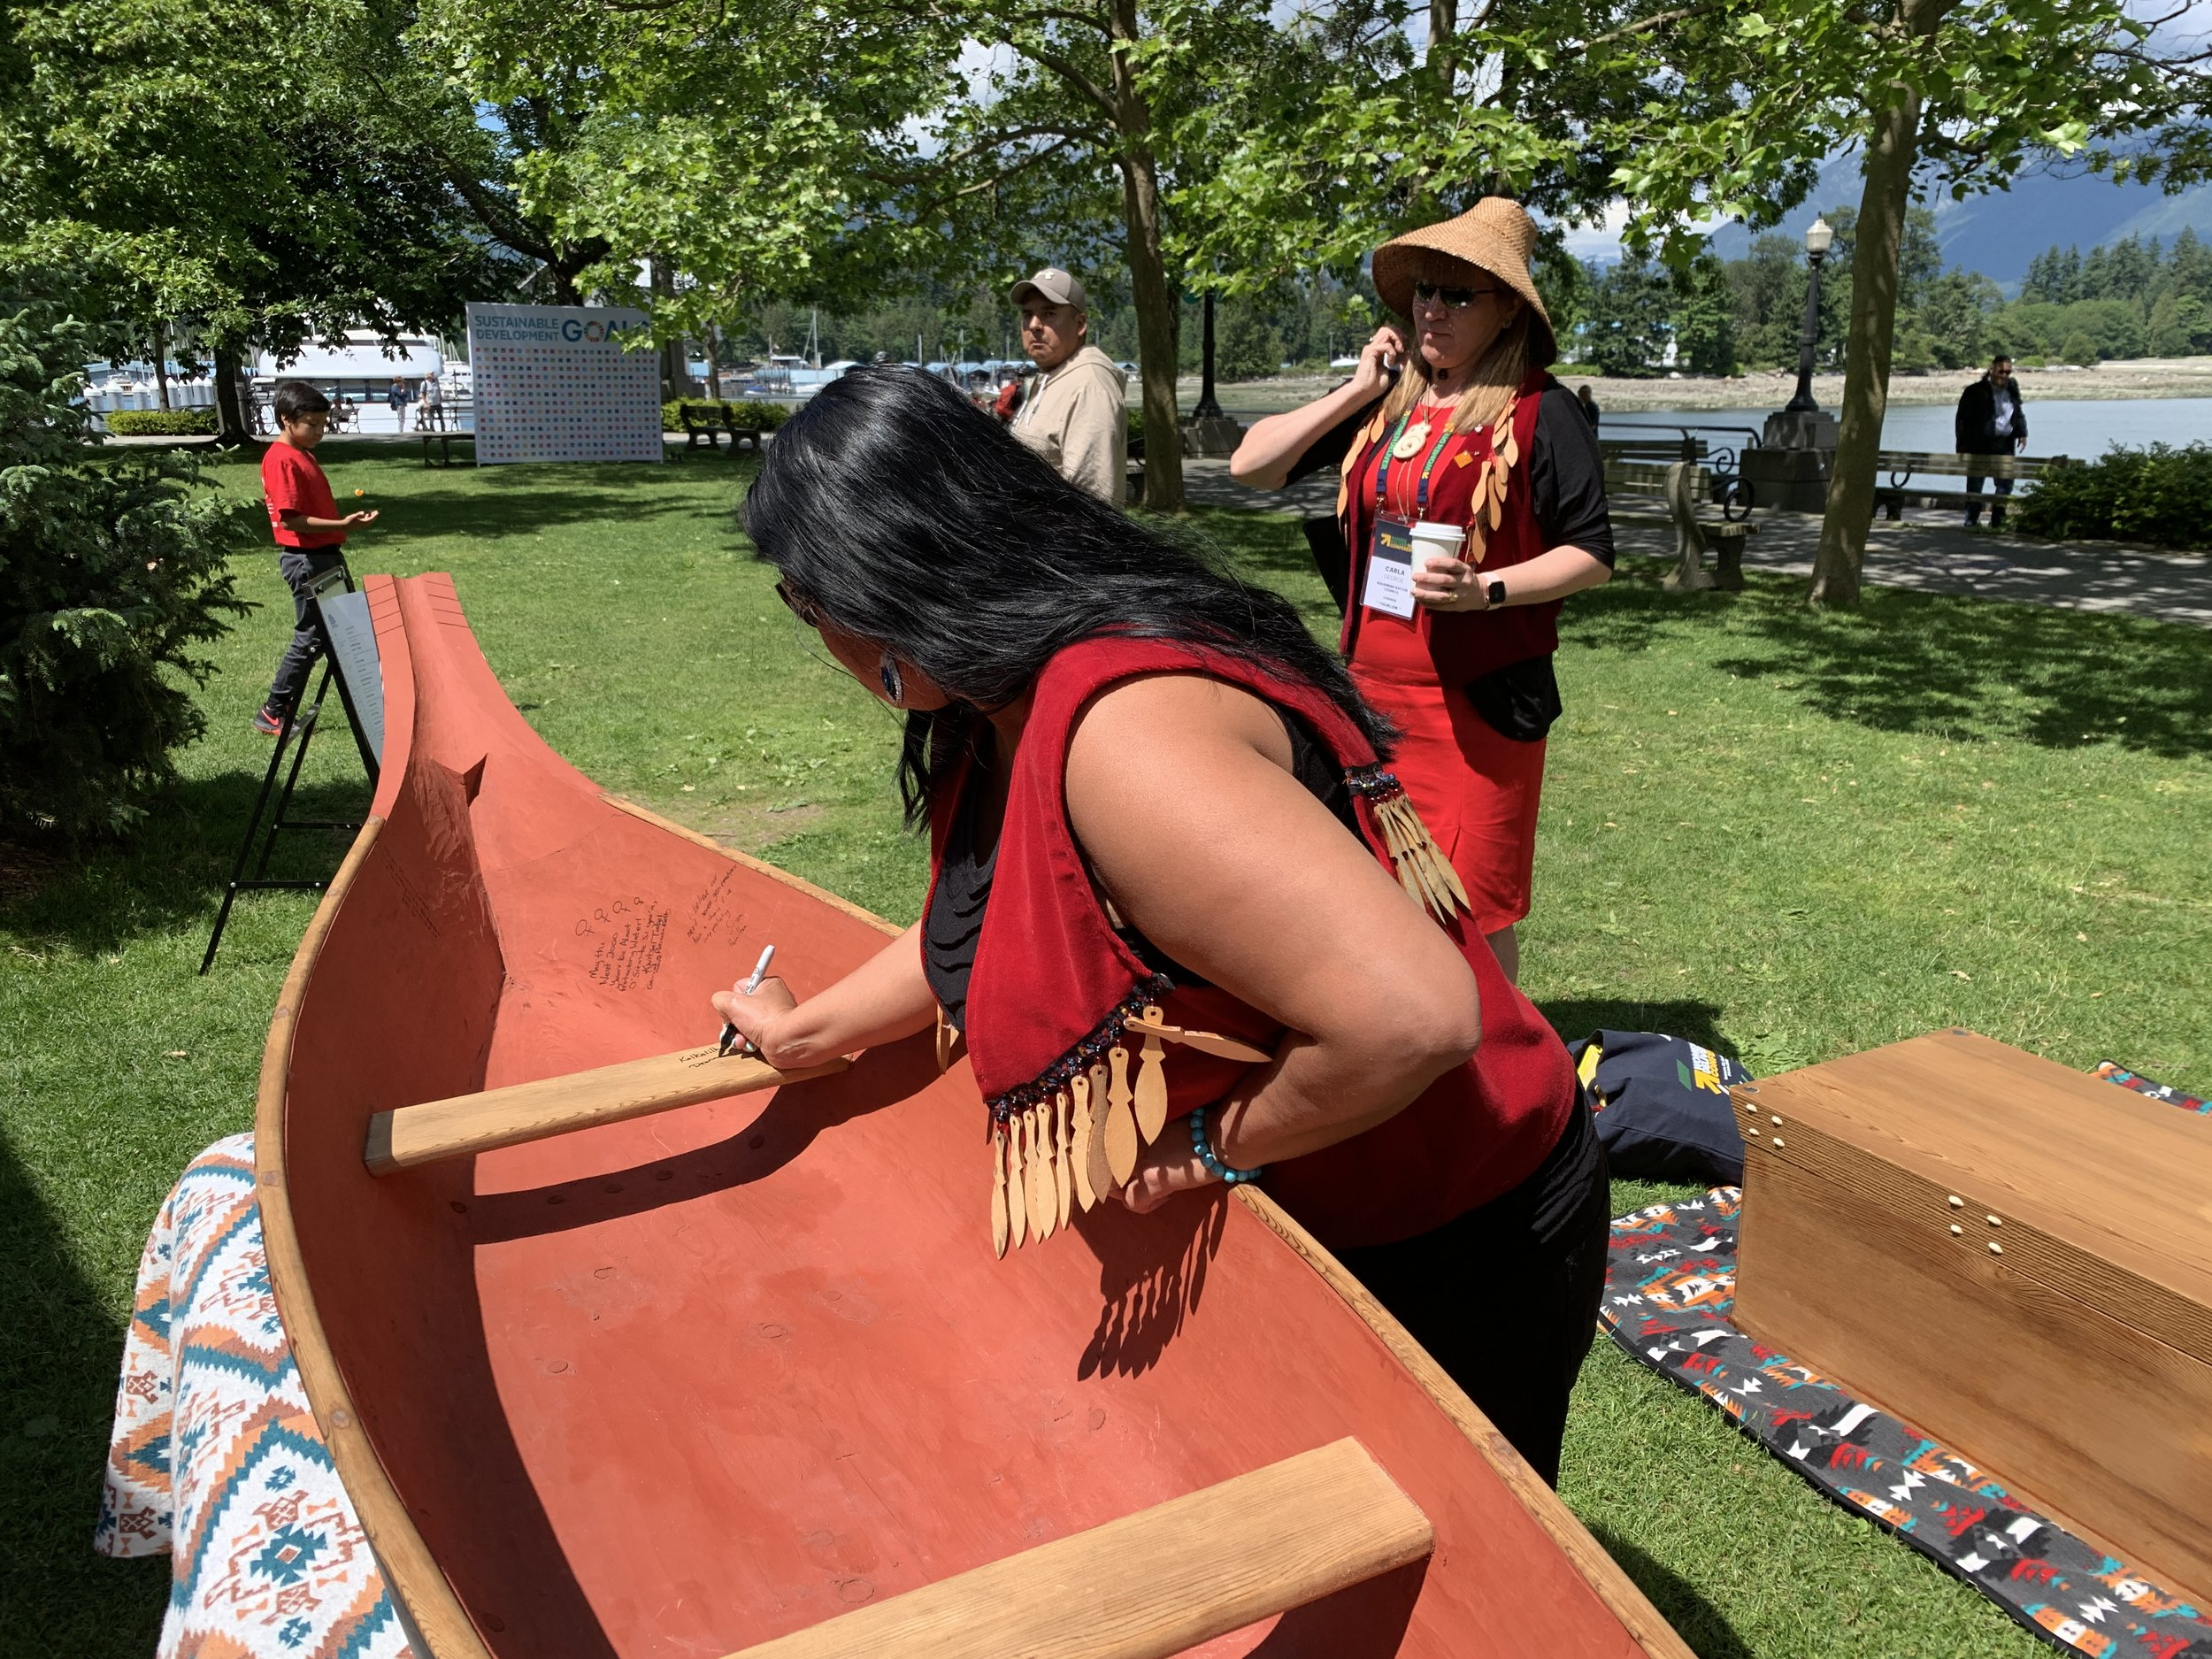 At the Longhouse Dialogues, Deanna Lewis from the Squamish Nation Council joins the many prominent women who have signed the Women's Honour Canoe and leaves a personal message.